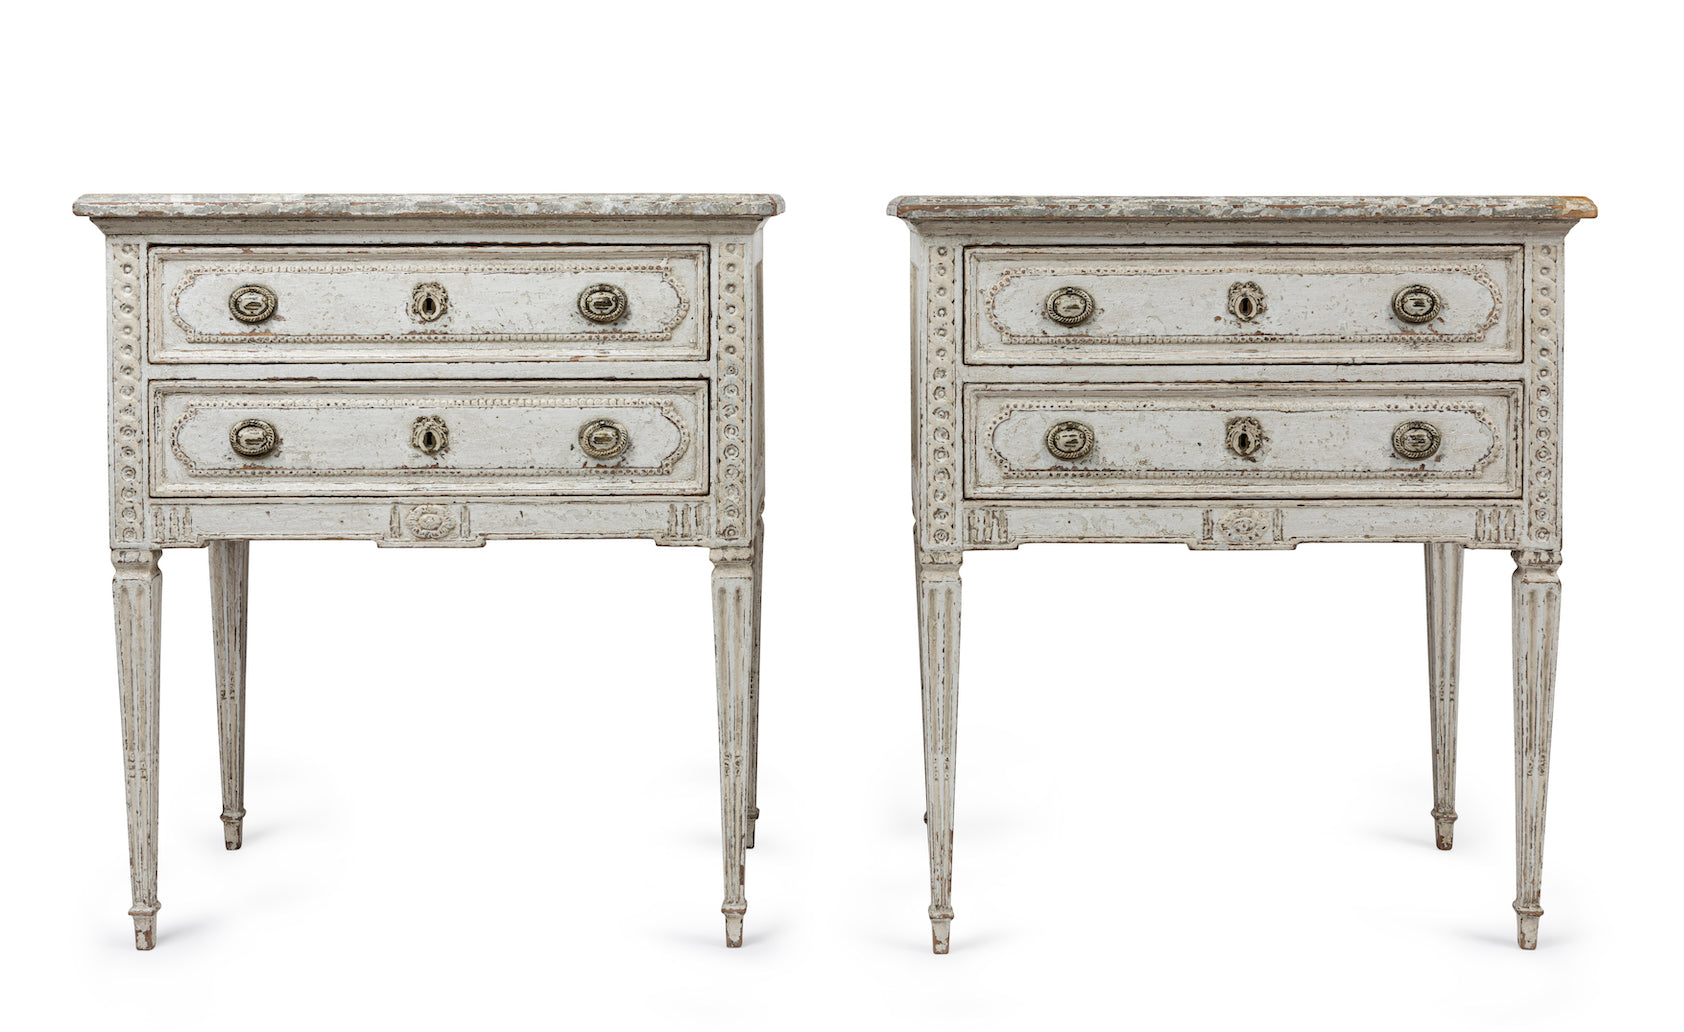 A fabulous pair of Louis XVI style commodes, French 19th Century